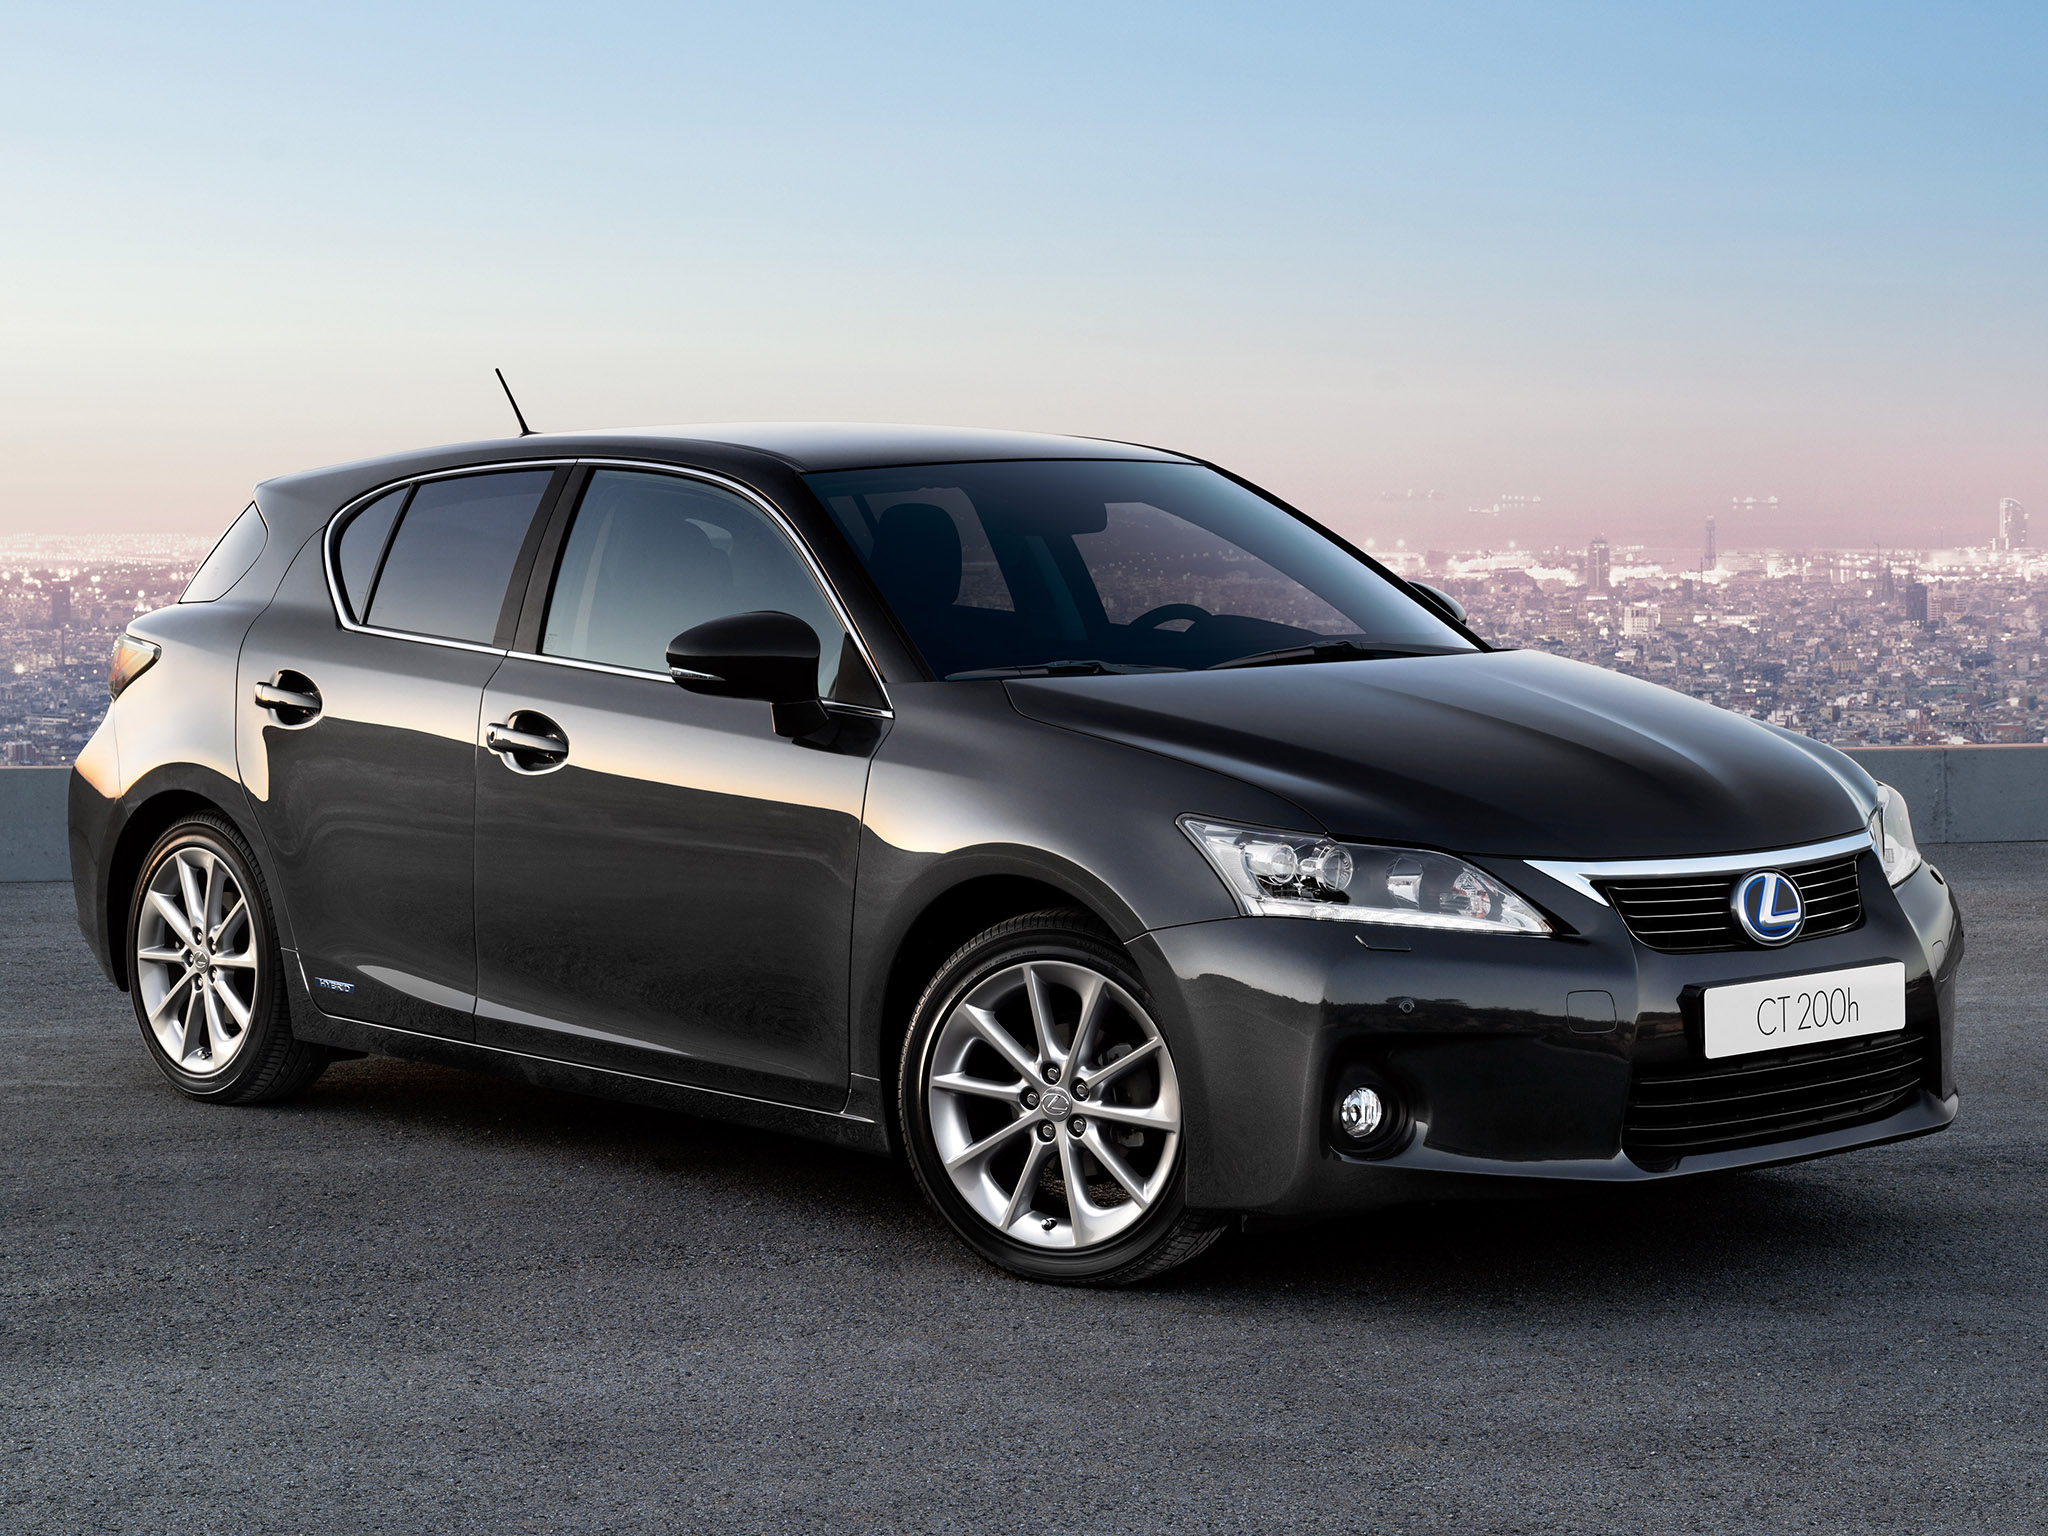 Lexus ct 2010 photo - 3